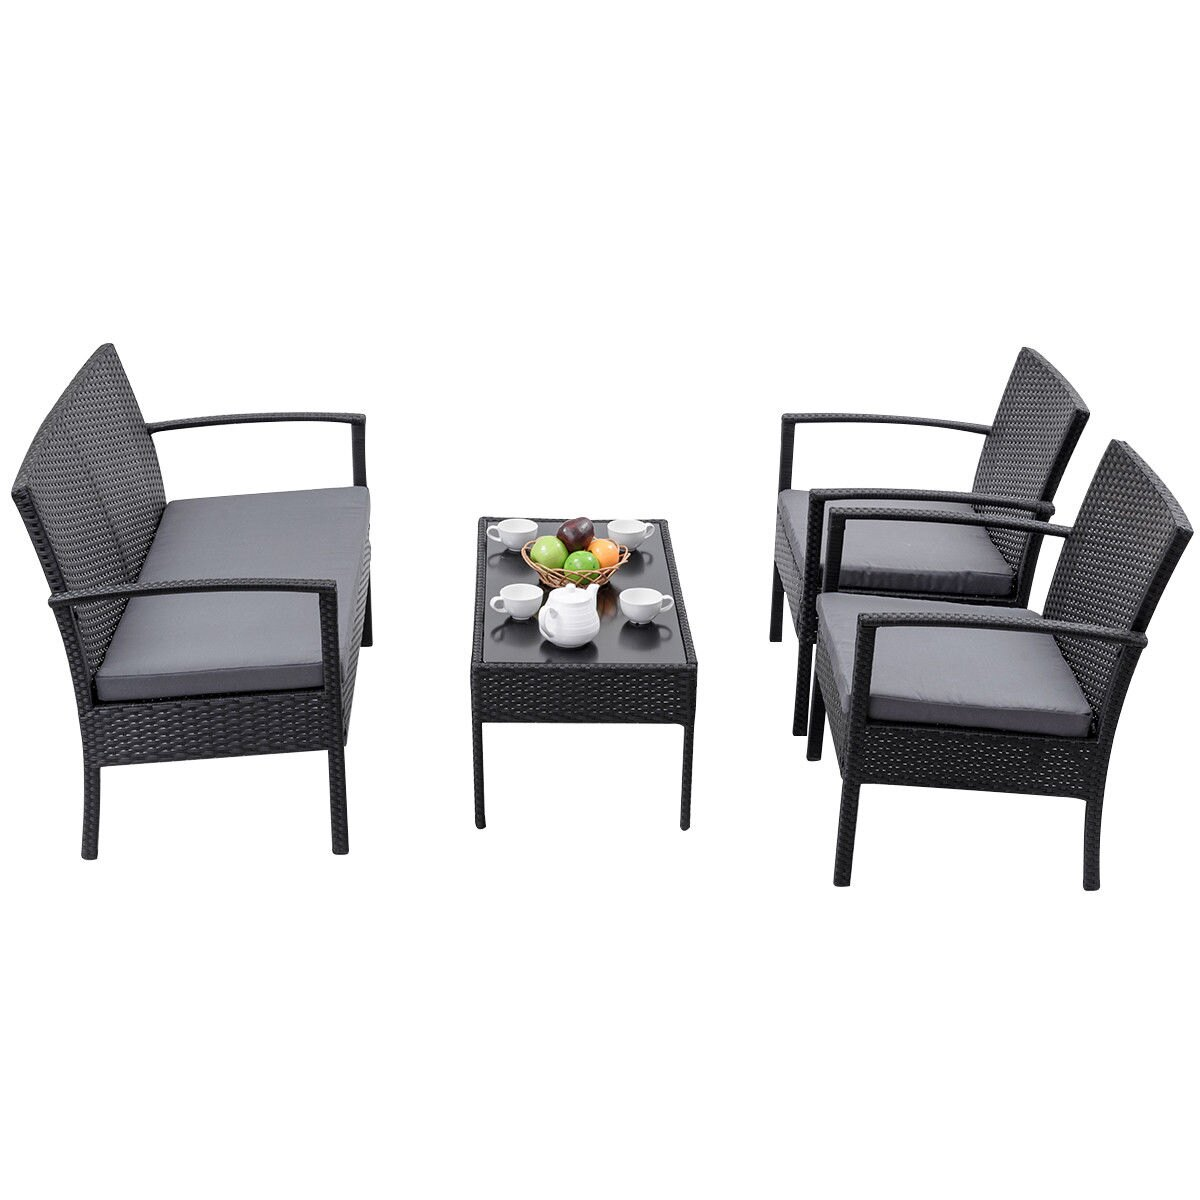 Costway 4 PCS Outdoor Patio Rattan Wicker Furniture Set Table Sofa Cushioned Deck Black 3